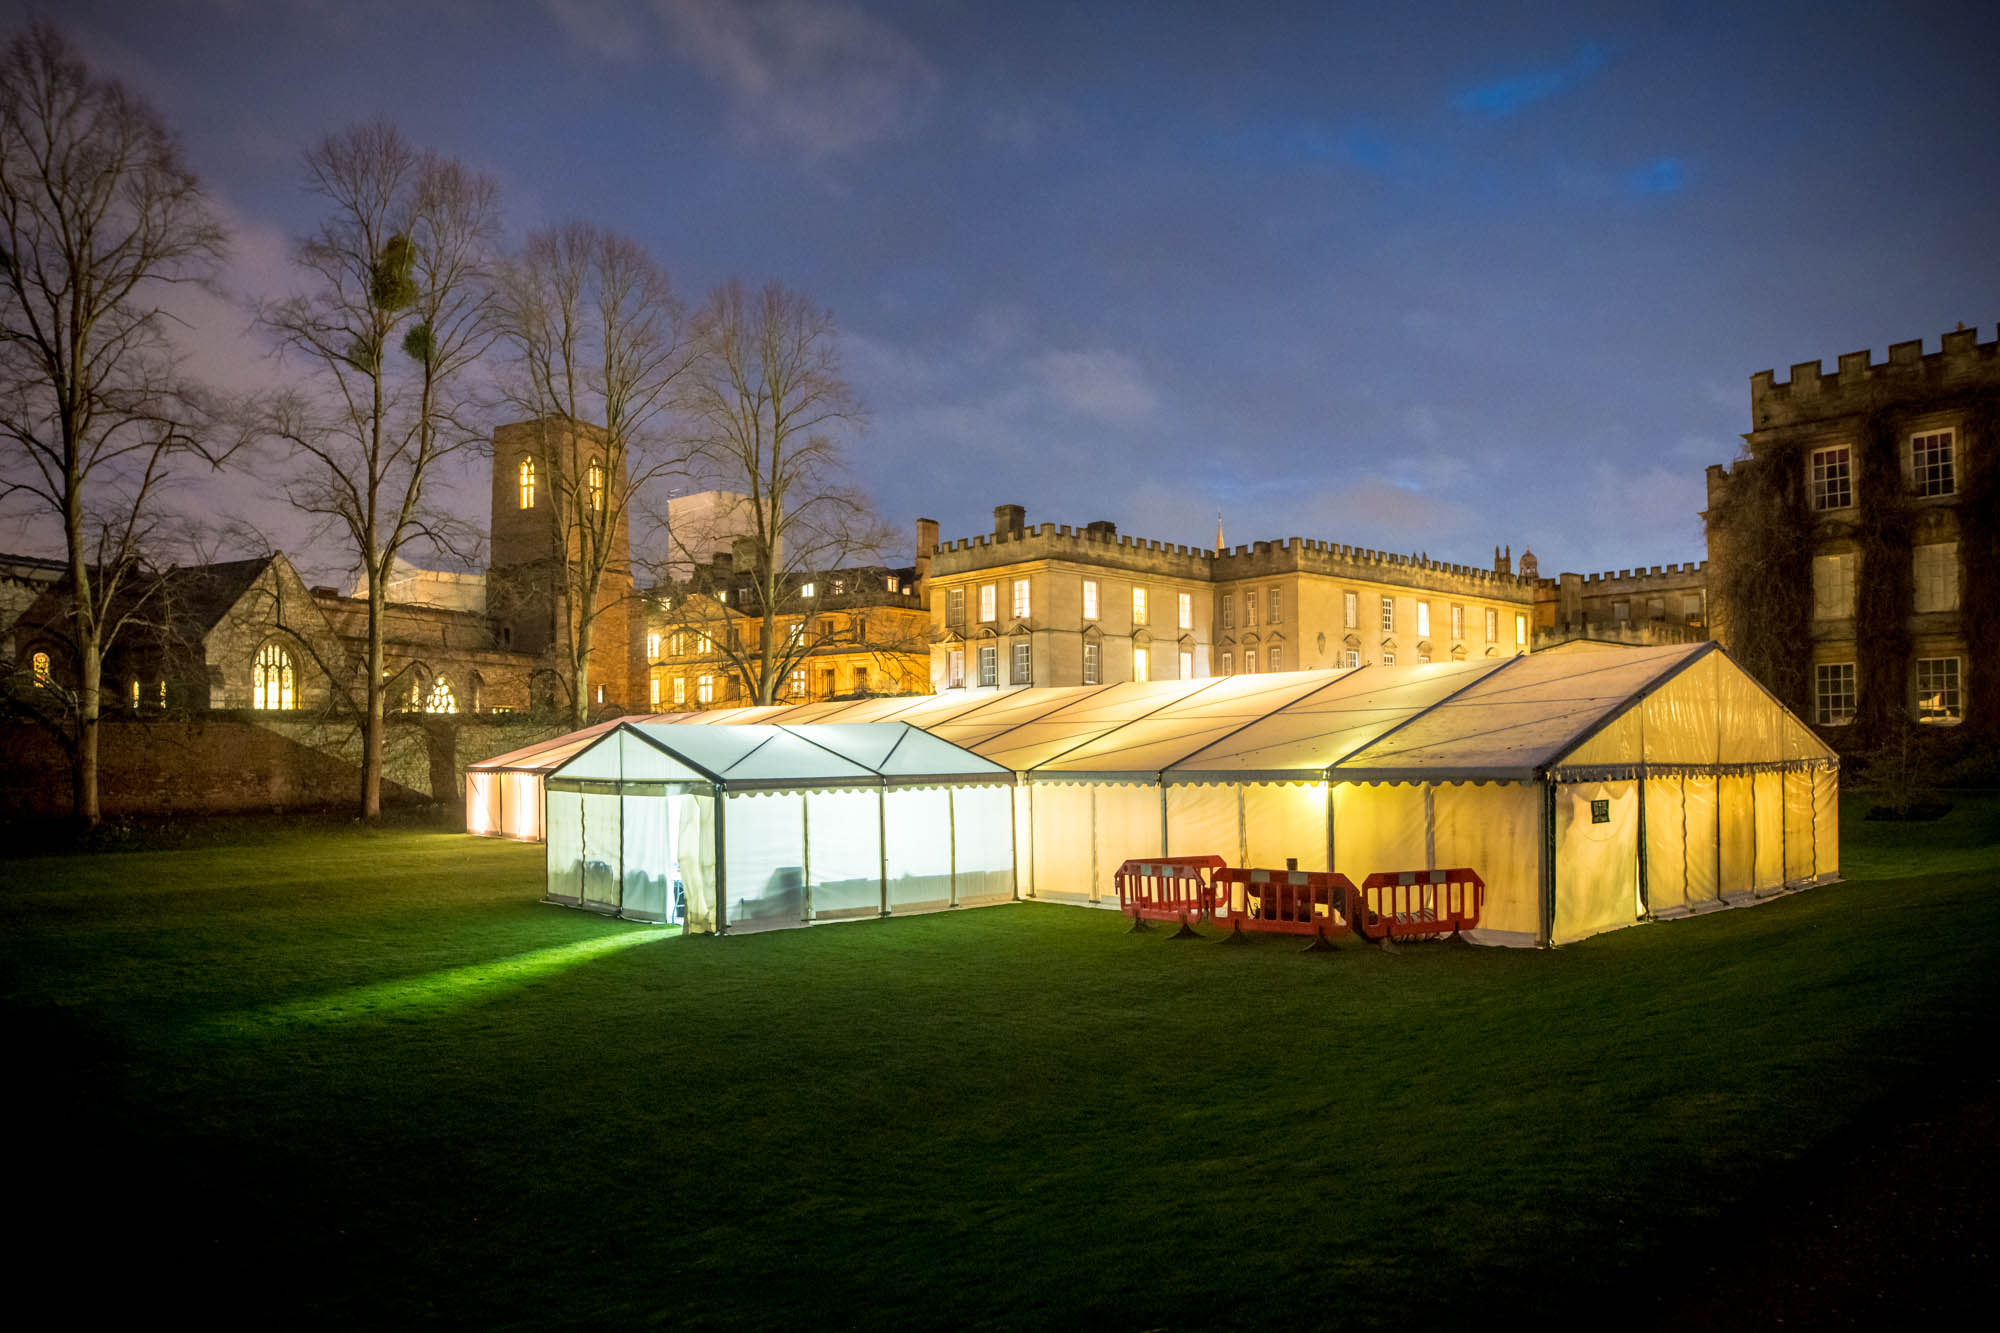 The marquee lit up in the New College gardens